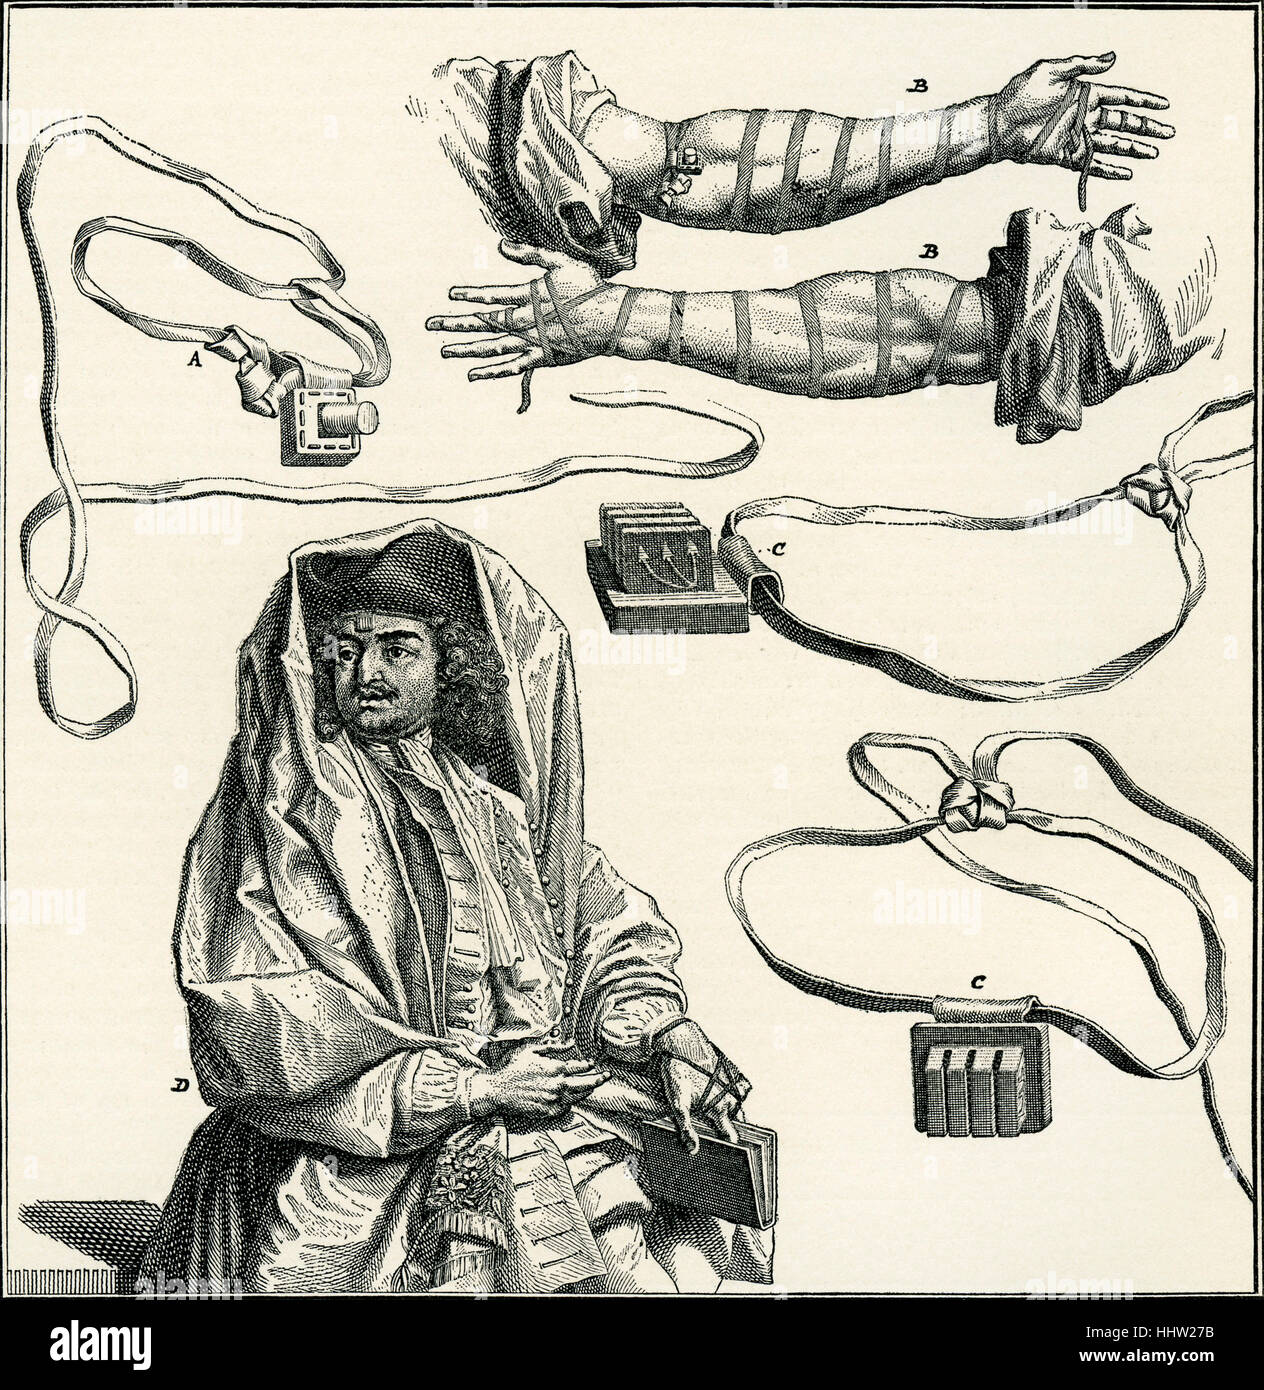 'Phylacteries and Their Arrangement, A. For the arm. B. As adjusted on the arm. C. For the head. D. Jew wearing - Stock Image